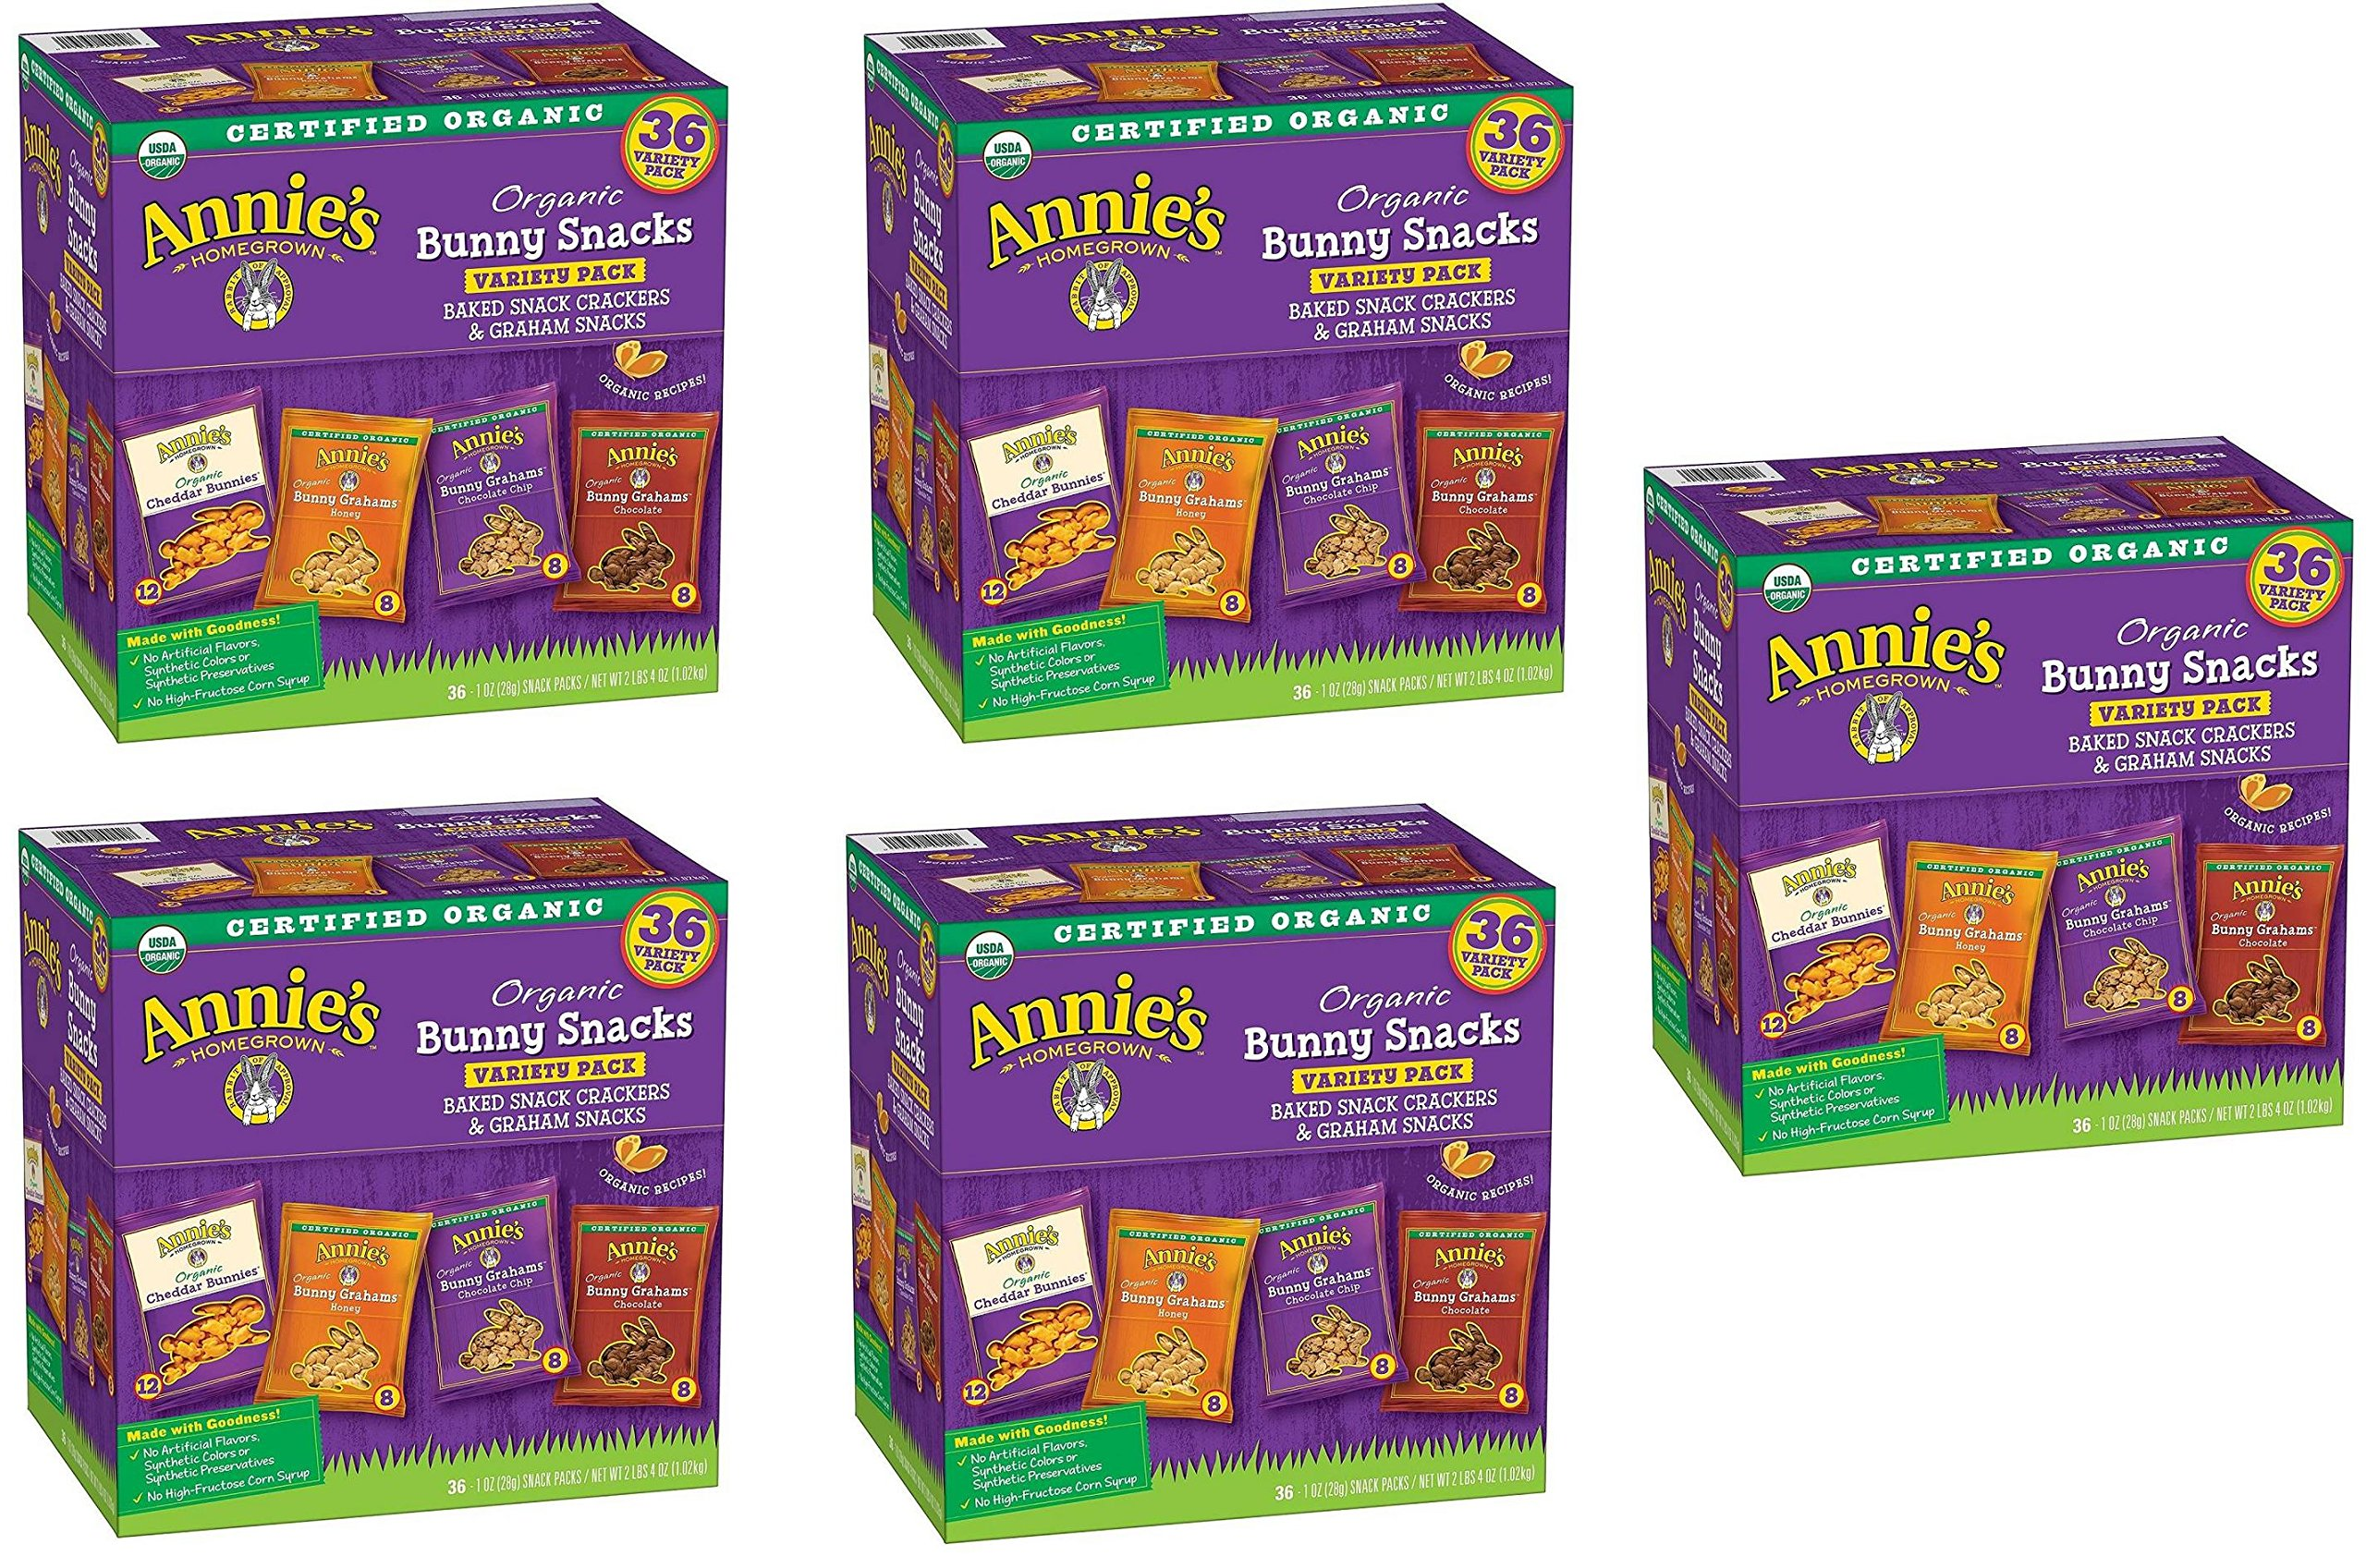 Annies Organic Variety Pack, Cheddar Bunnies and Bunny Graham Crackers Snack Packs, 36 Pouches, 1 oz Each huyARl, 5 Pack by Annie's Homegrown